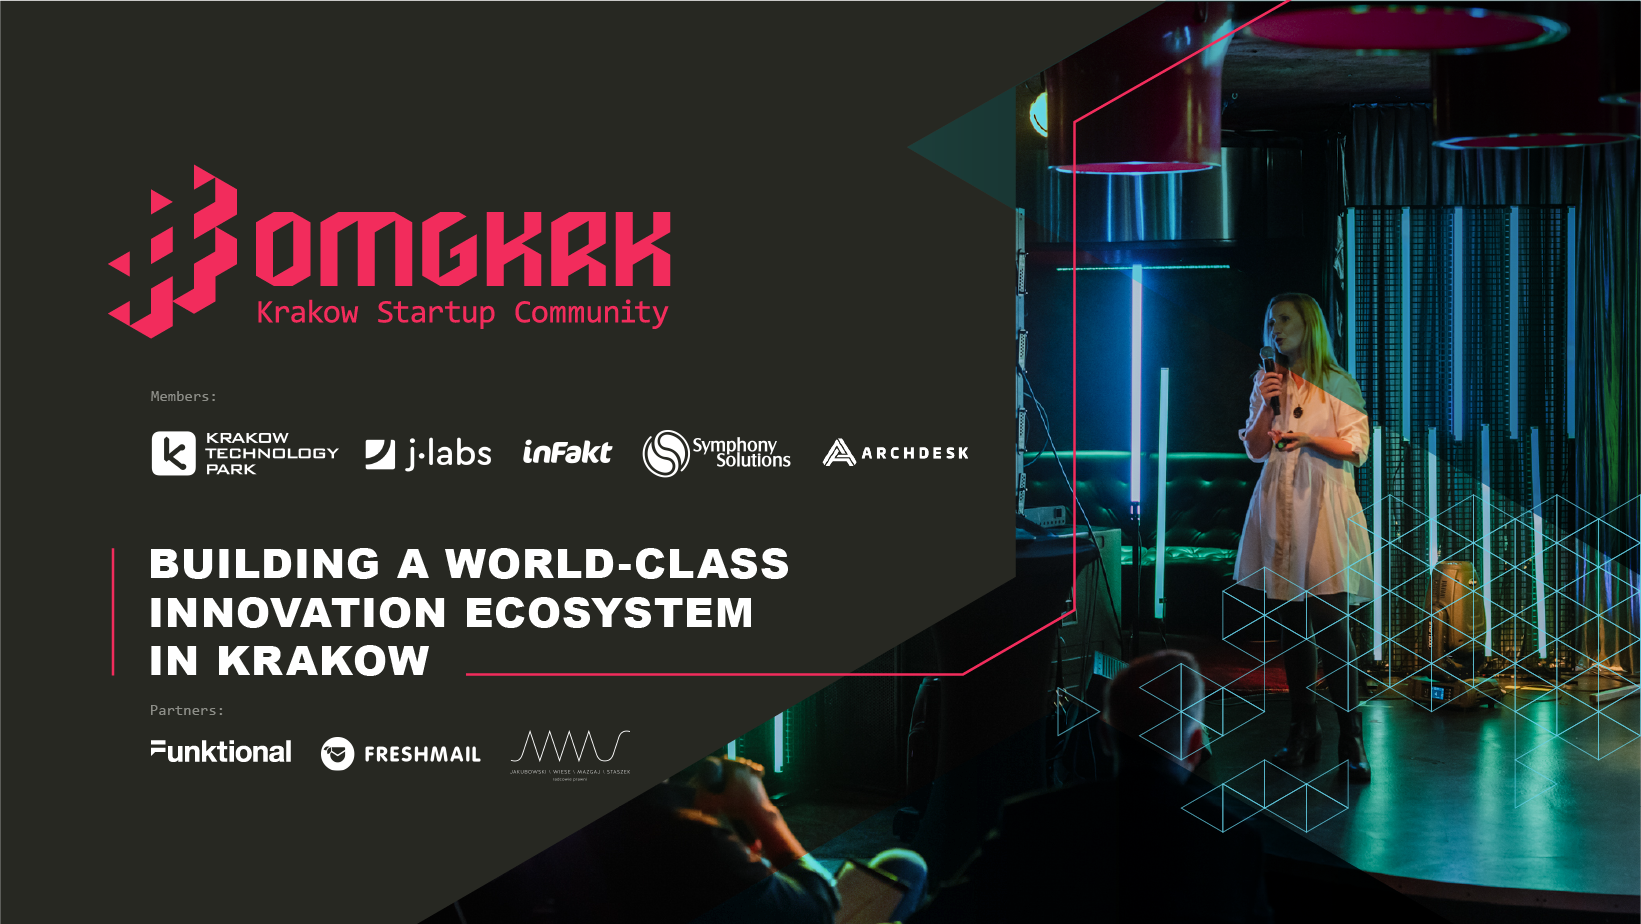 , The Pitch November 26th: Takachar Wins Smogathon, X-Massive 2018, Synerise Sponsors AI Academy For Schools, Academy #10, Airly Recruiting Smogfighters, Entrepreneur Club, Bidroom Secures Huge Investment & More